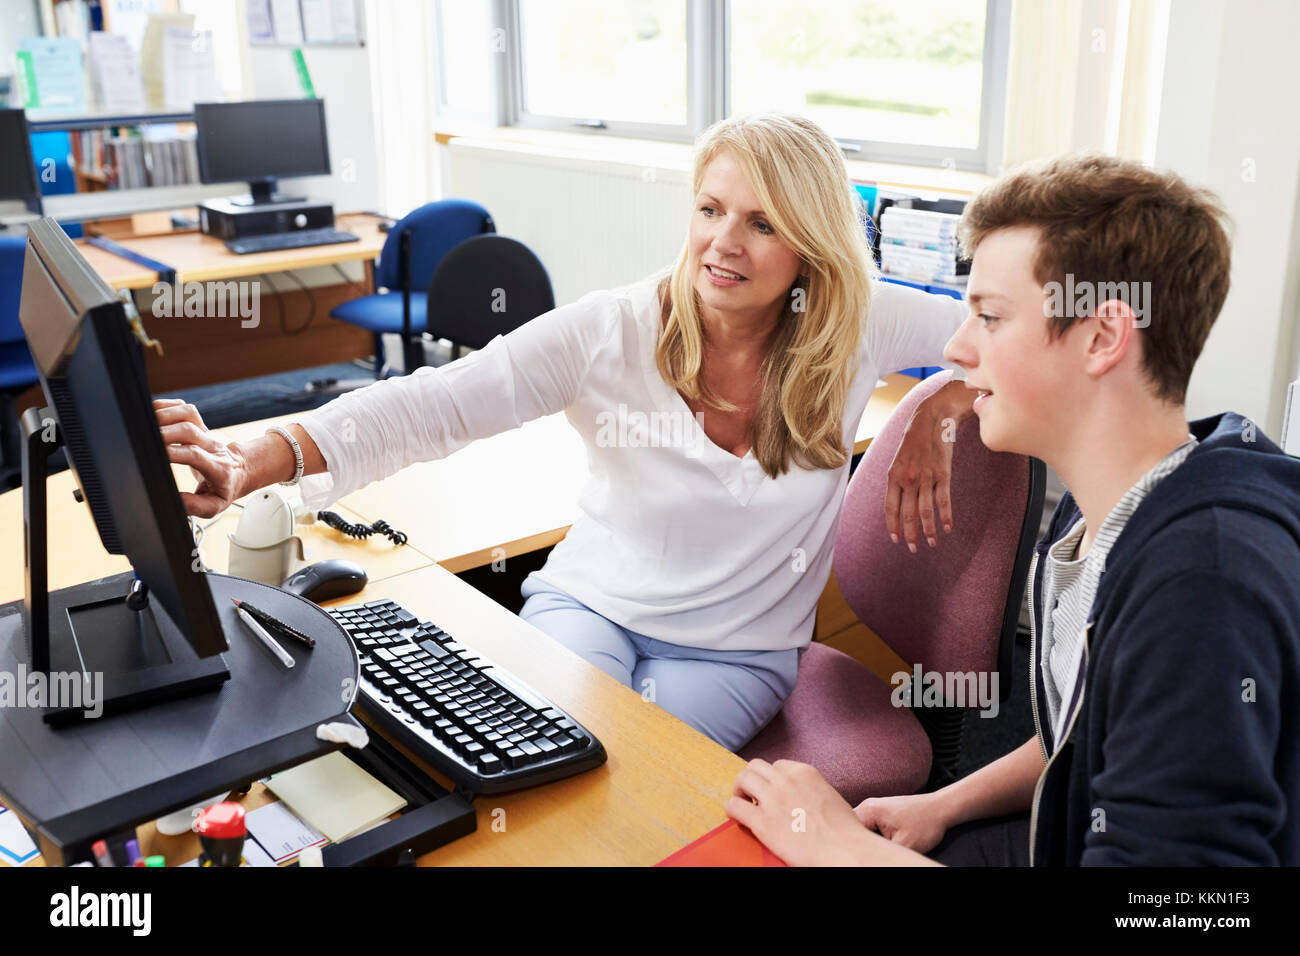 Female Careers Advisor Meeting Male College Student - Stock Image